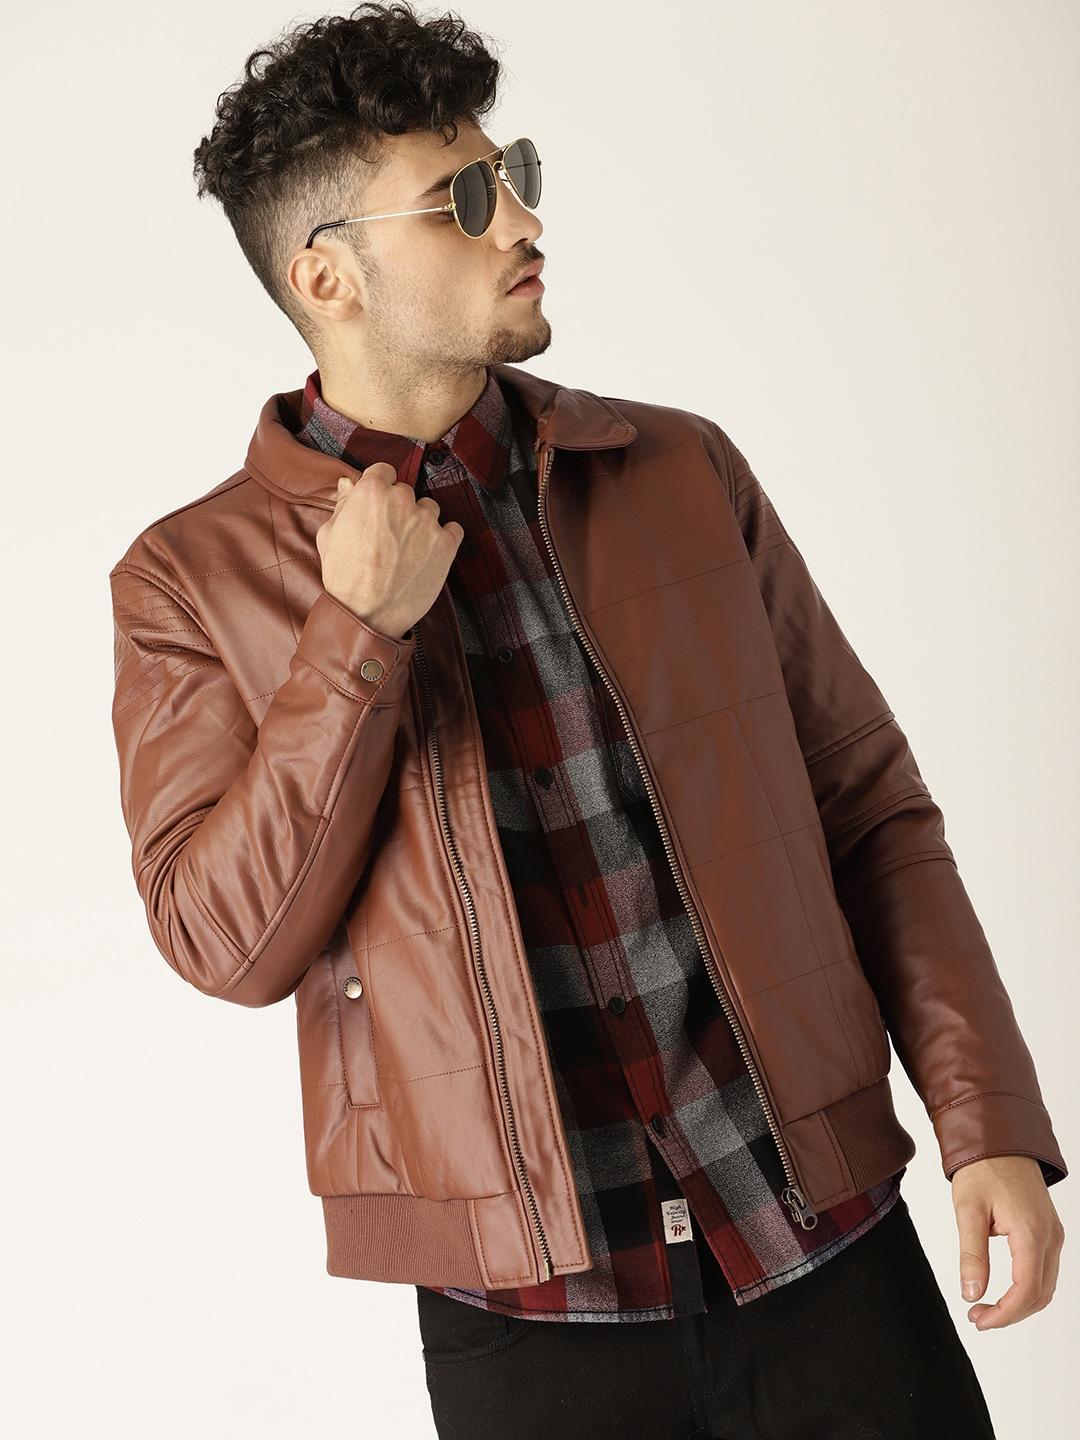 Jackets Buy Leather Jackets Denim Jackets For Men Women Myntra